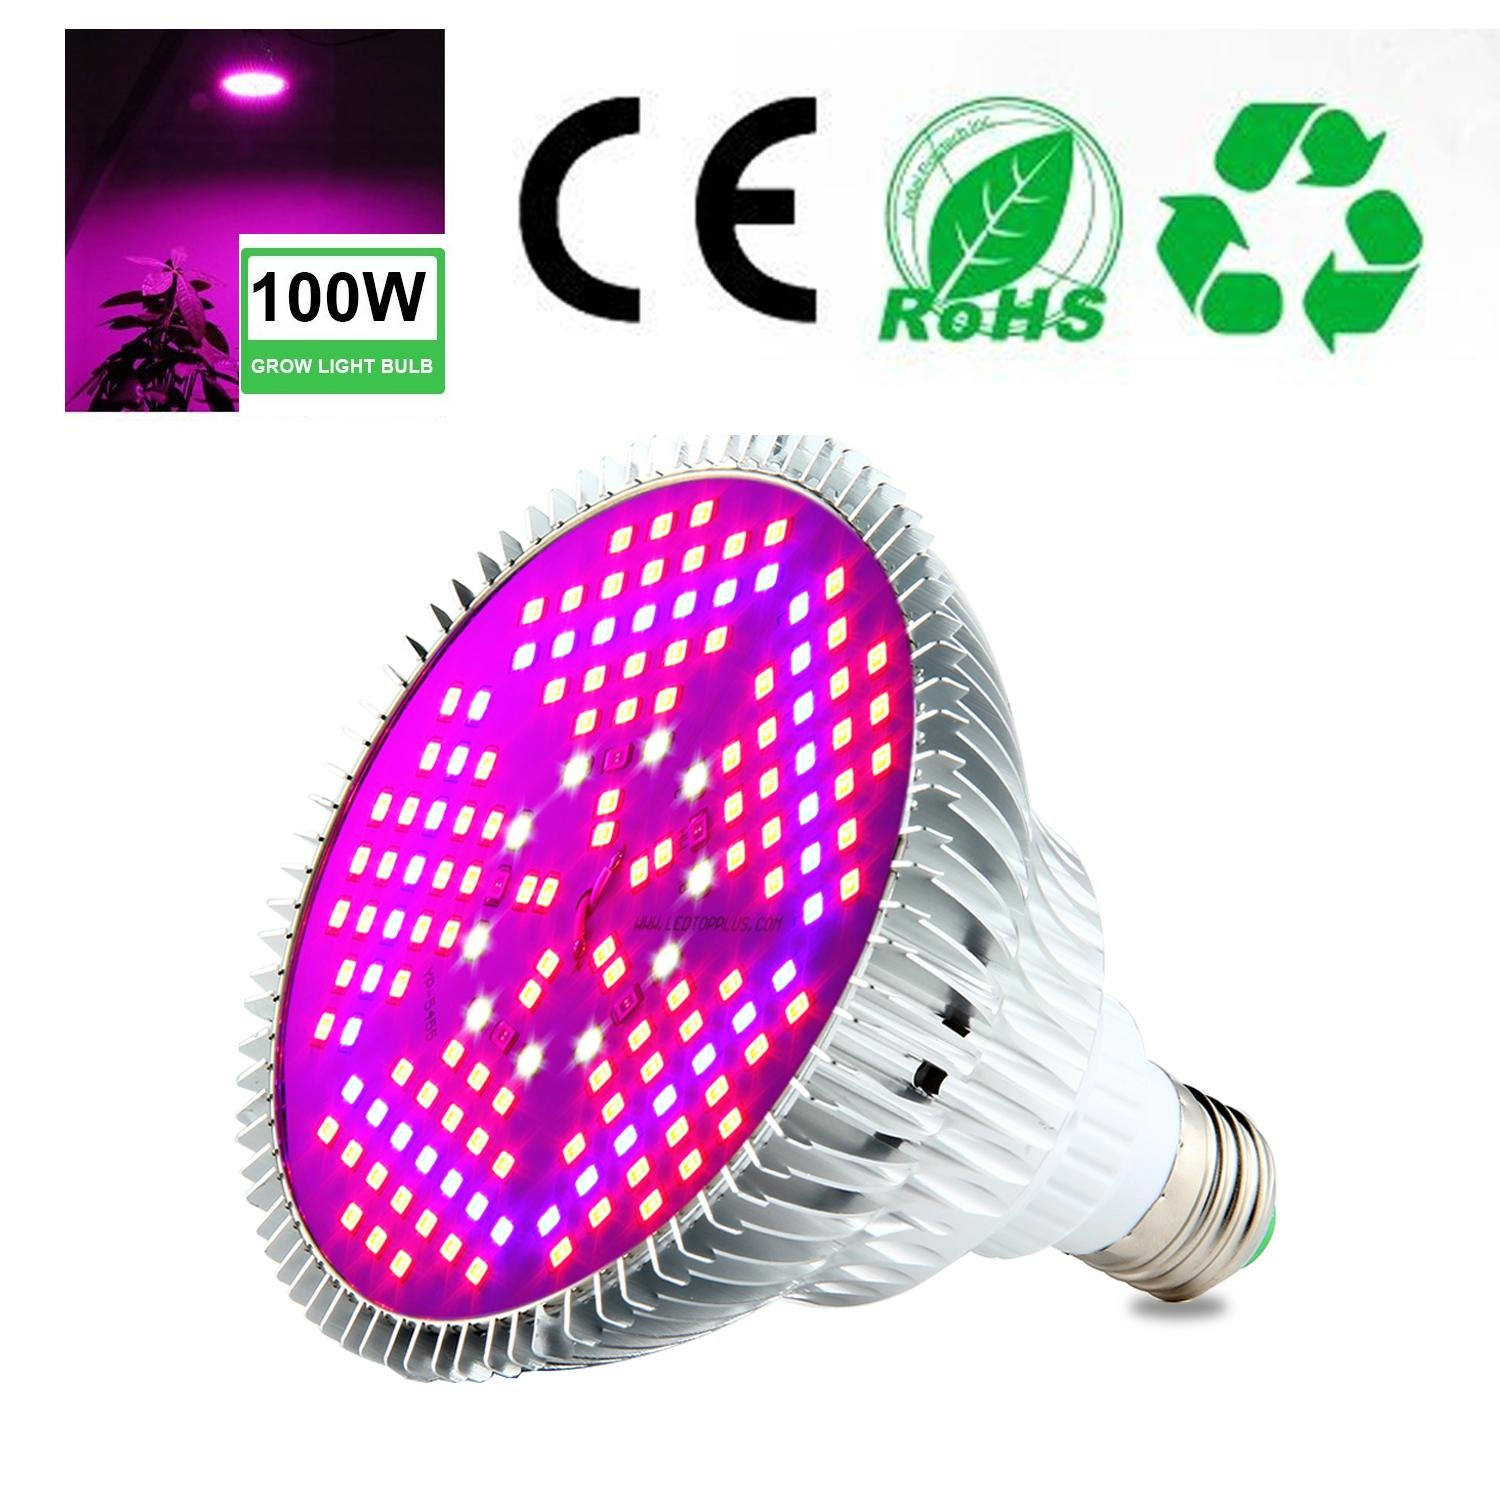 Cheap bulb plants for sale find bulb plants for sale deals on line get quotations aolvo led grow light bulb 100w full spectrum plant light lamp for indoor plants hydroponics izmirmasajfo